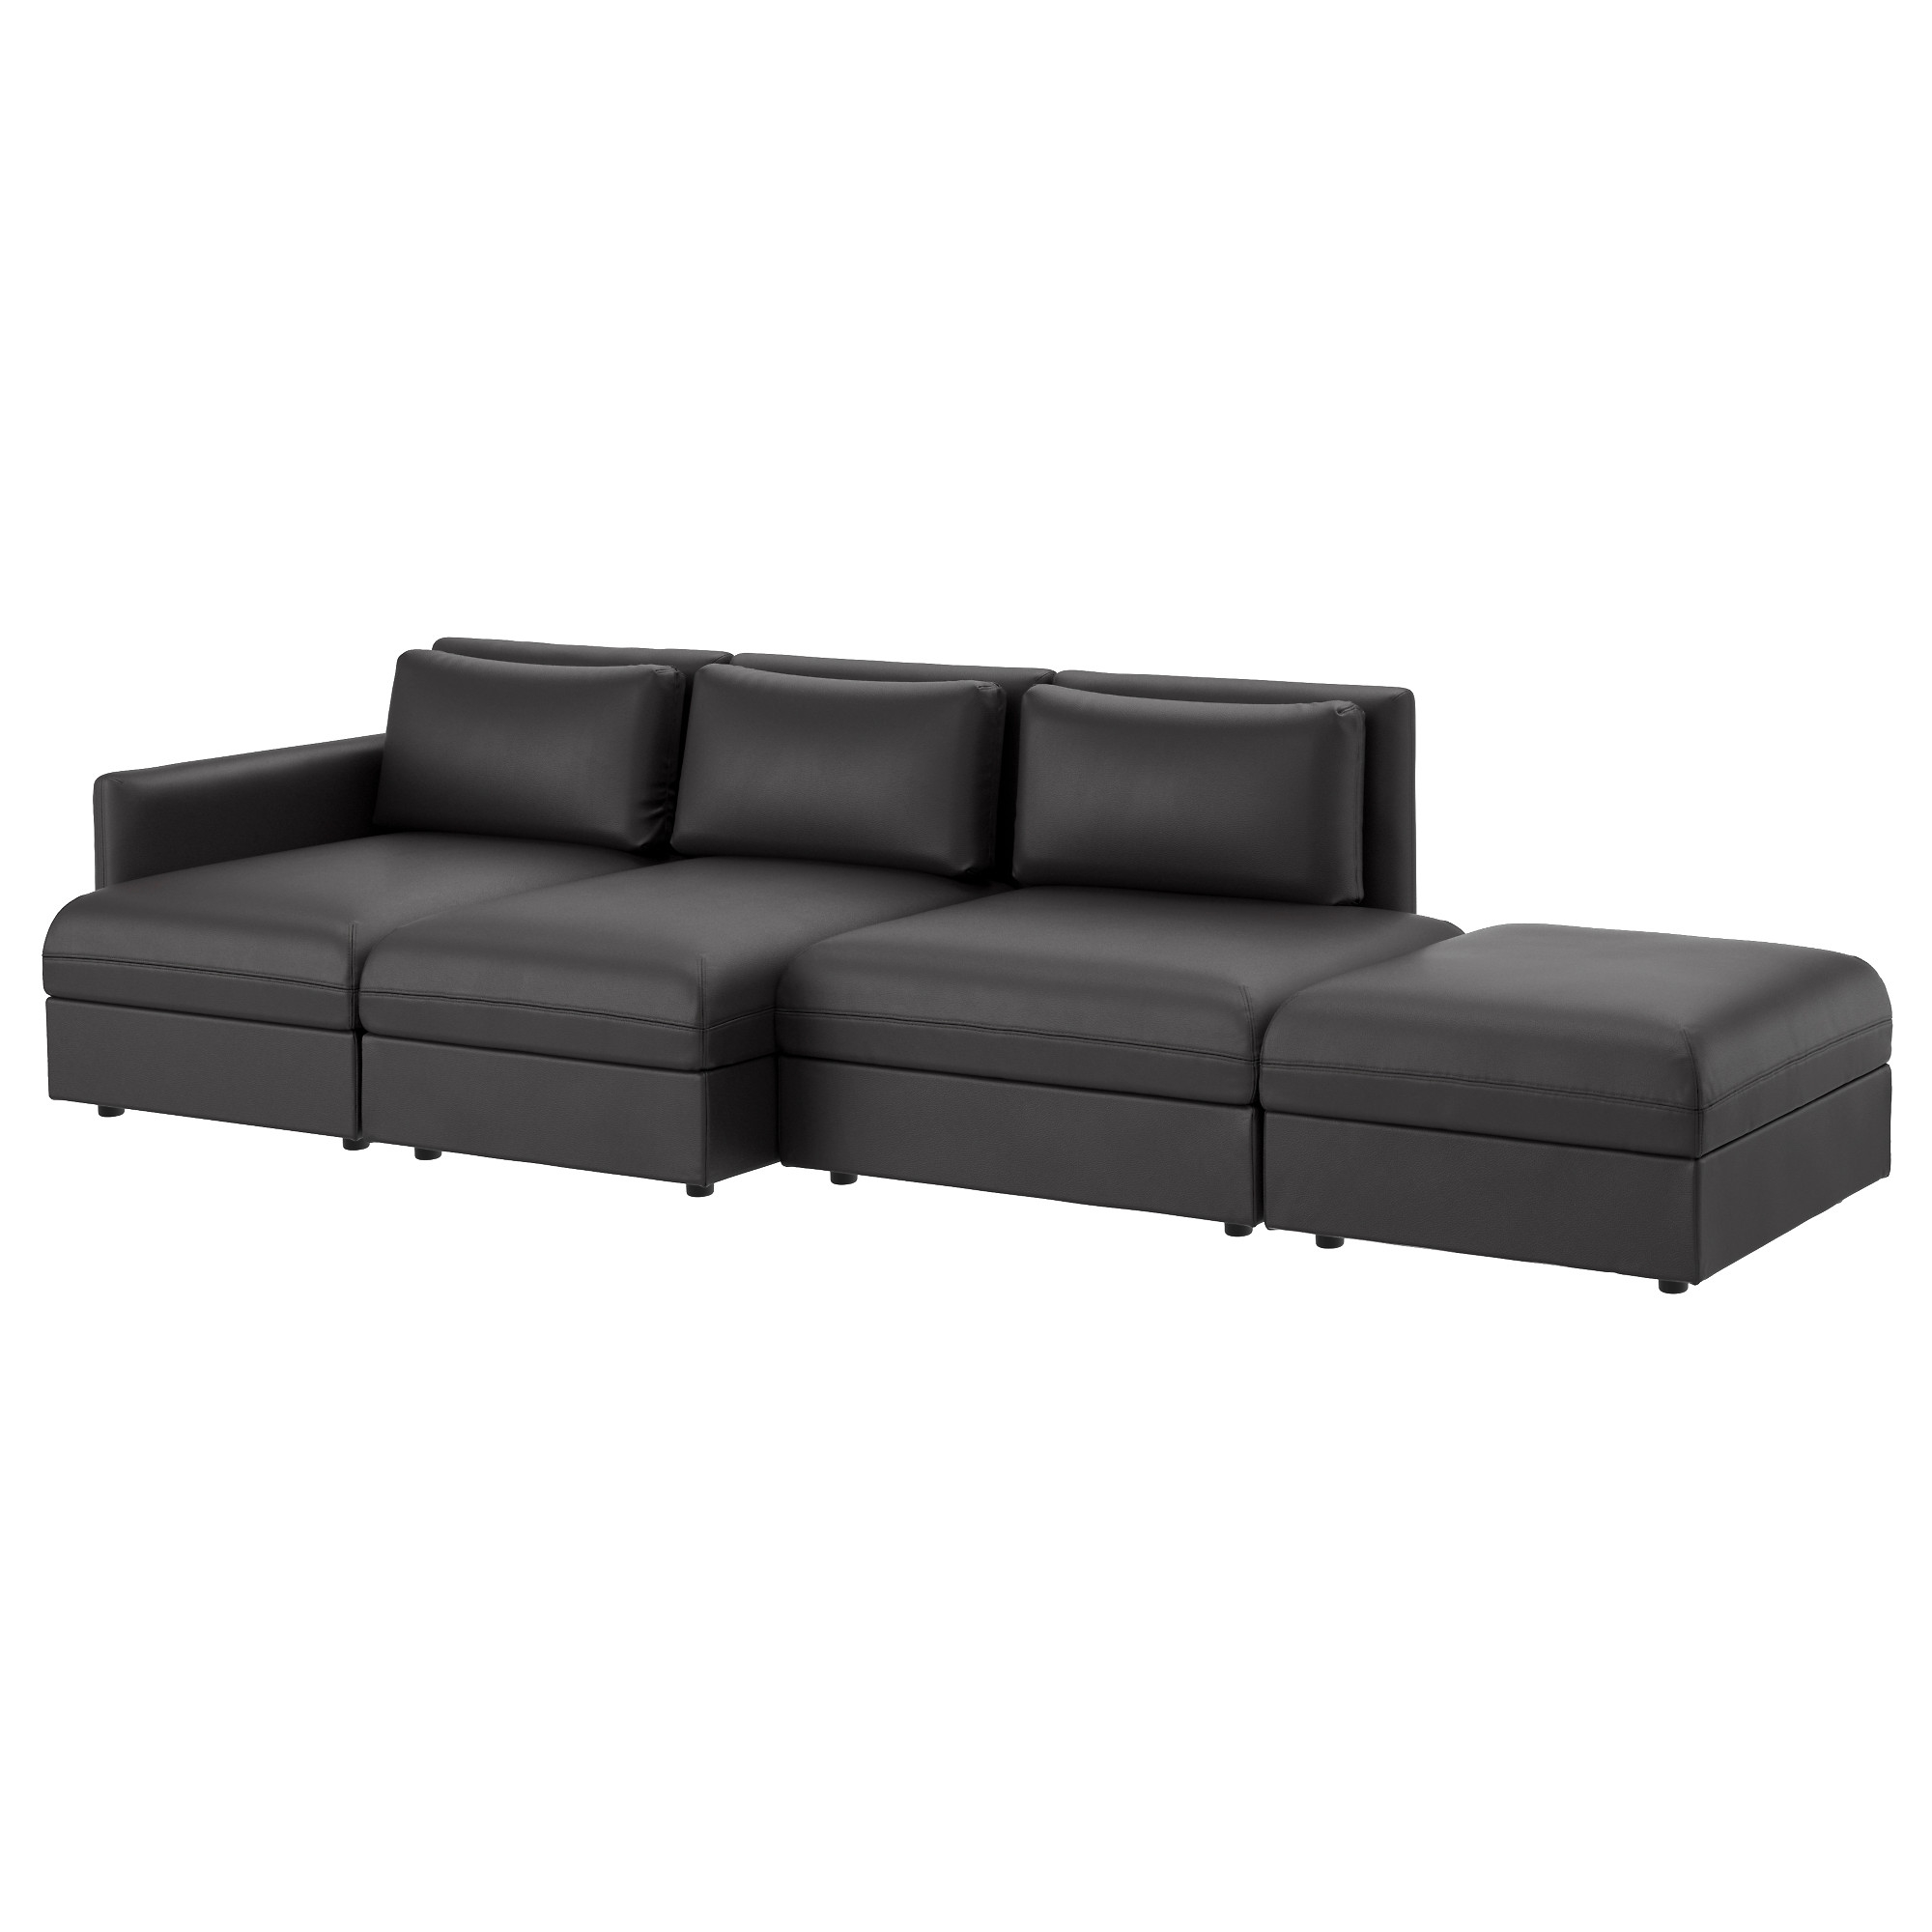 Sectional Sofas Couches Ikea Pertaining To Angled Sofa Sectional (Image 11 of 15)